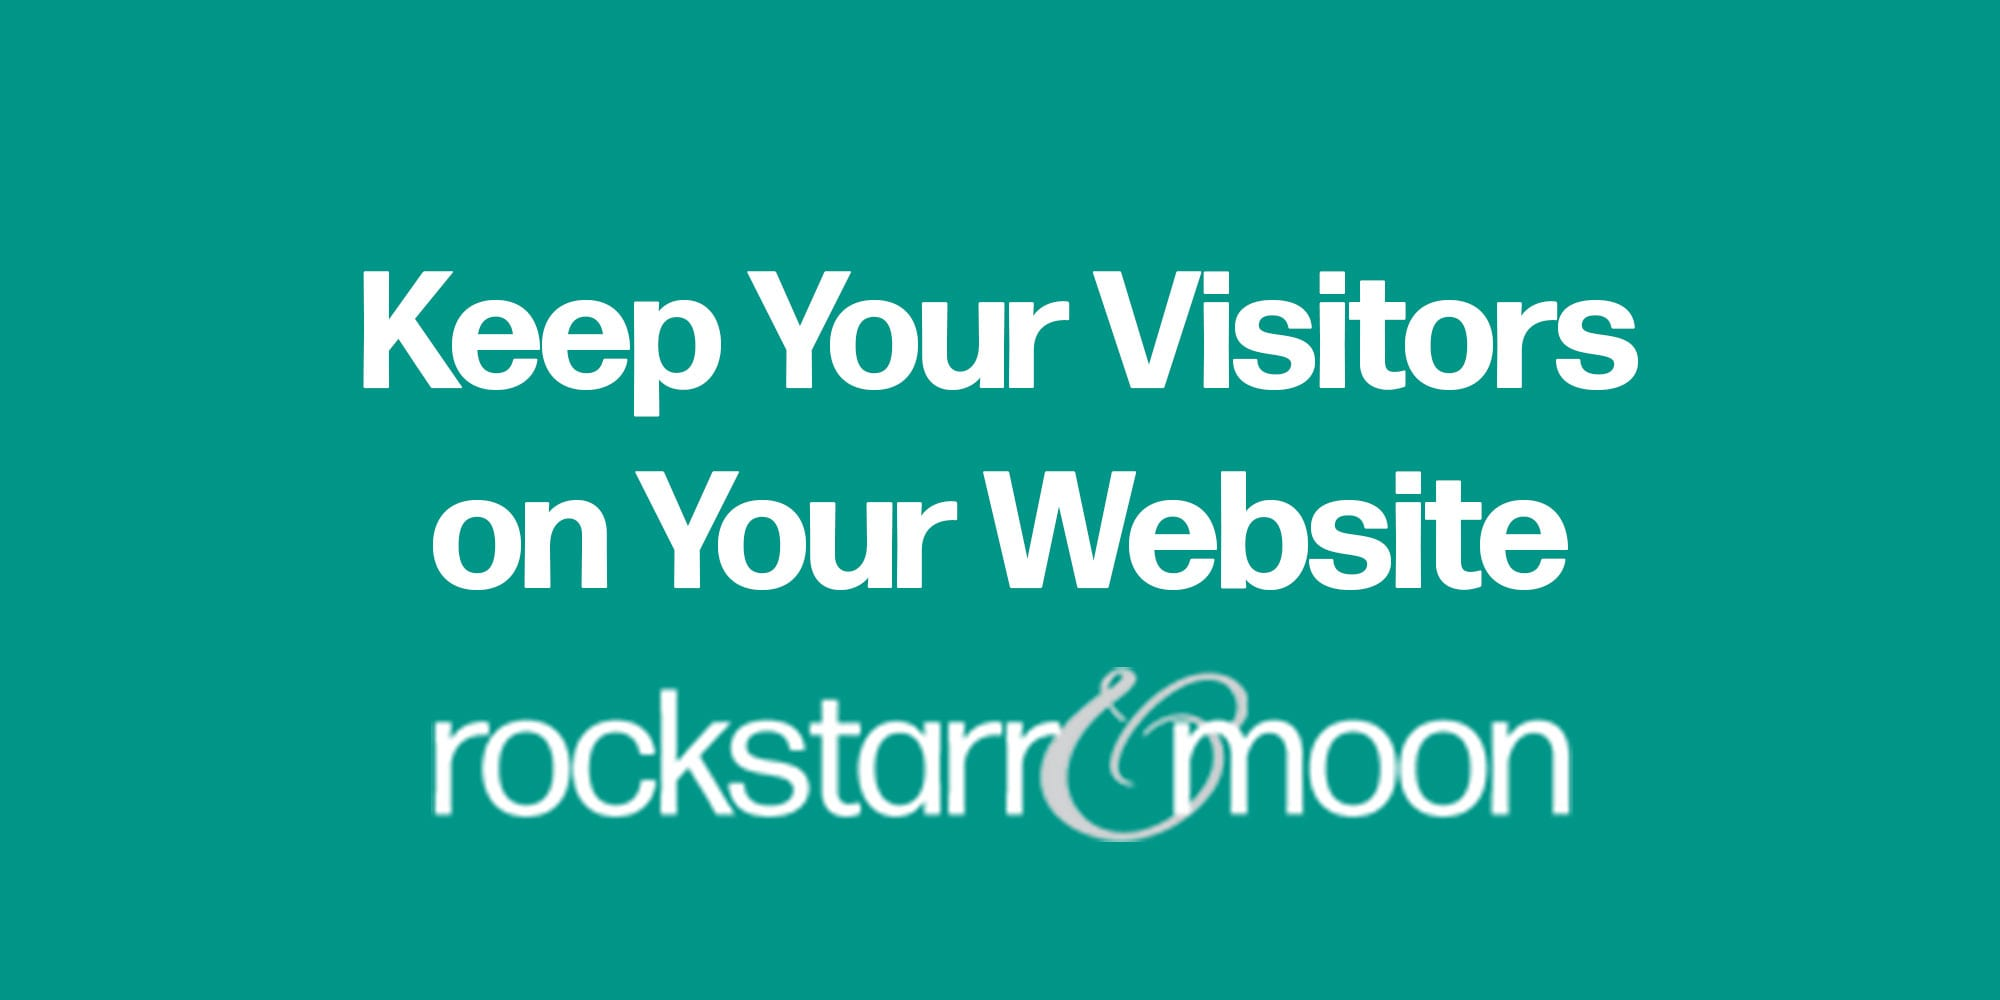 14 Secrets to Keeping Your Visitors on Your Website